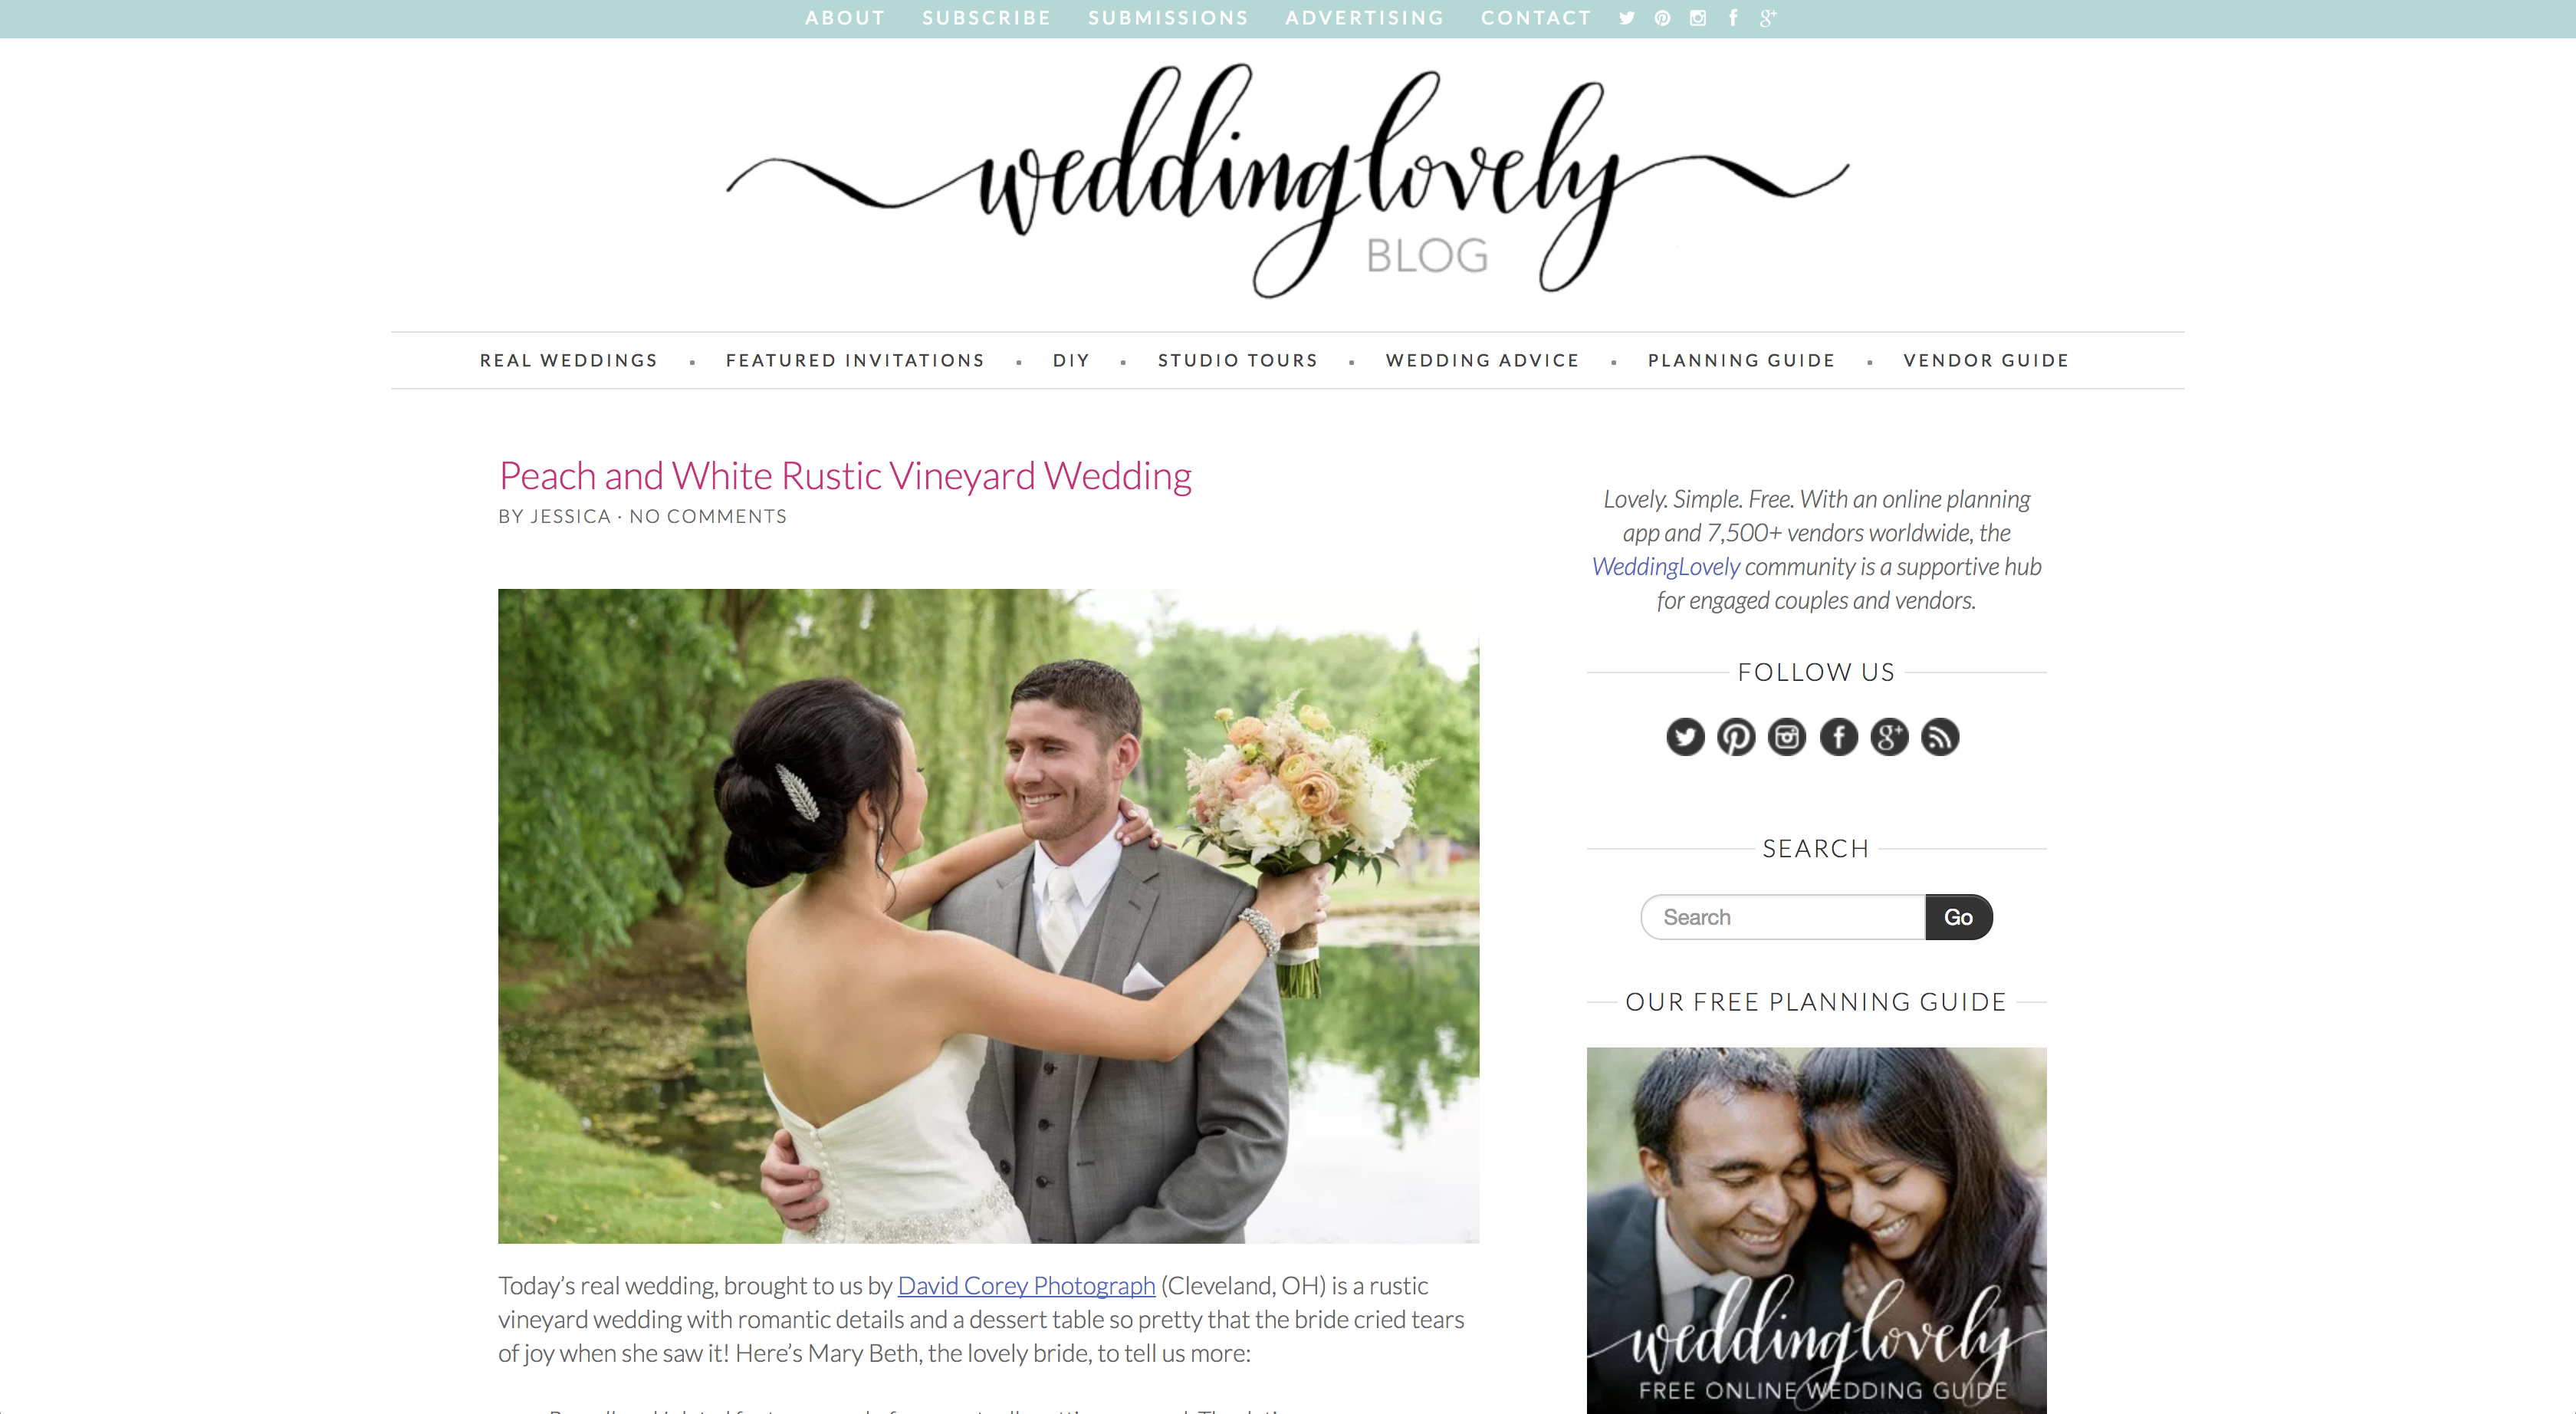 WeddingLovely Blog